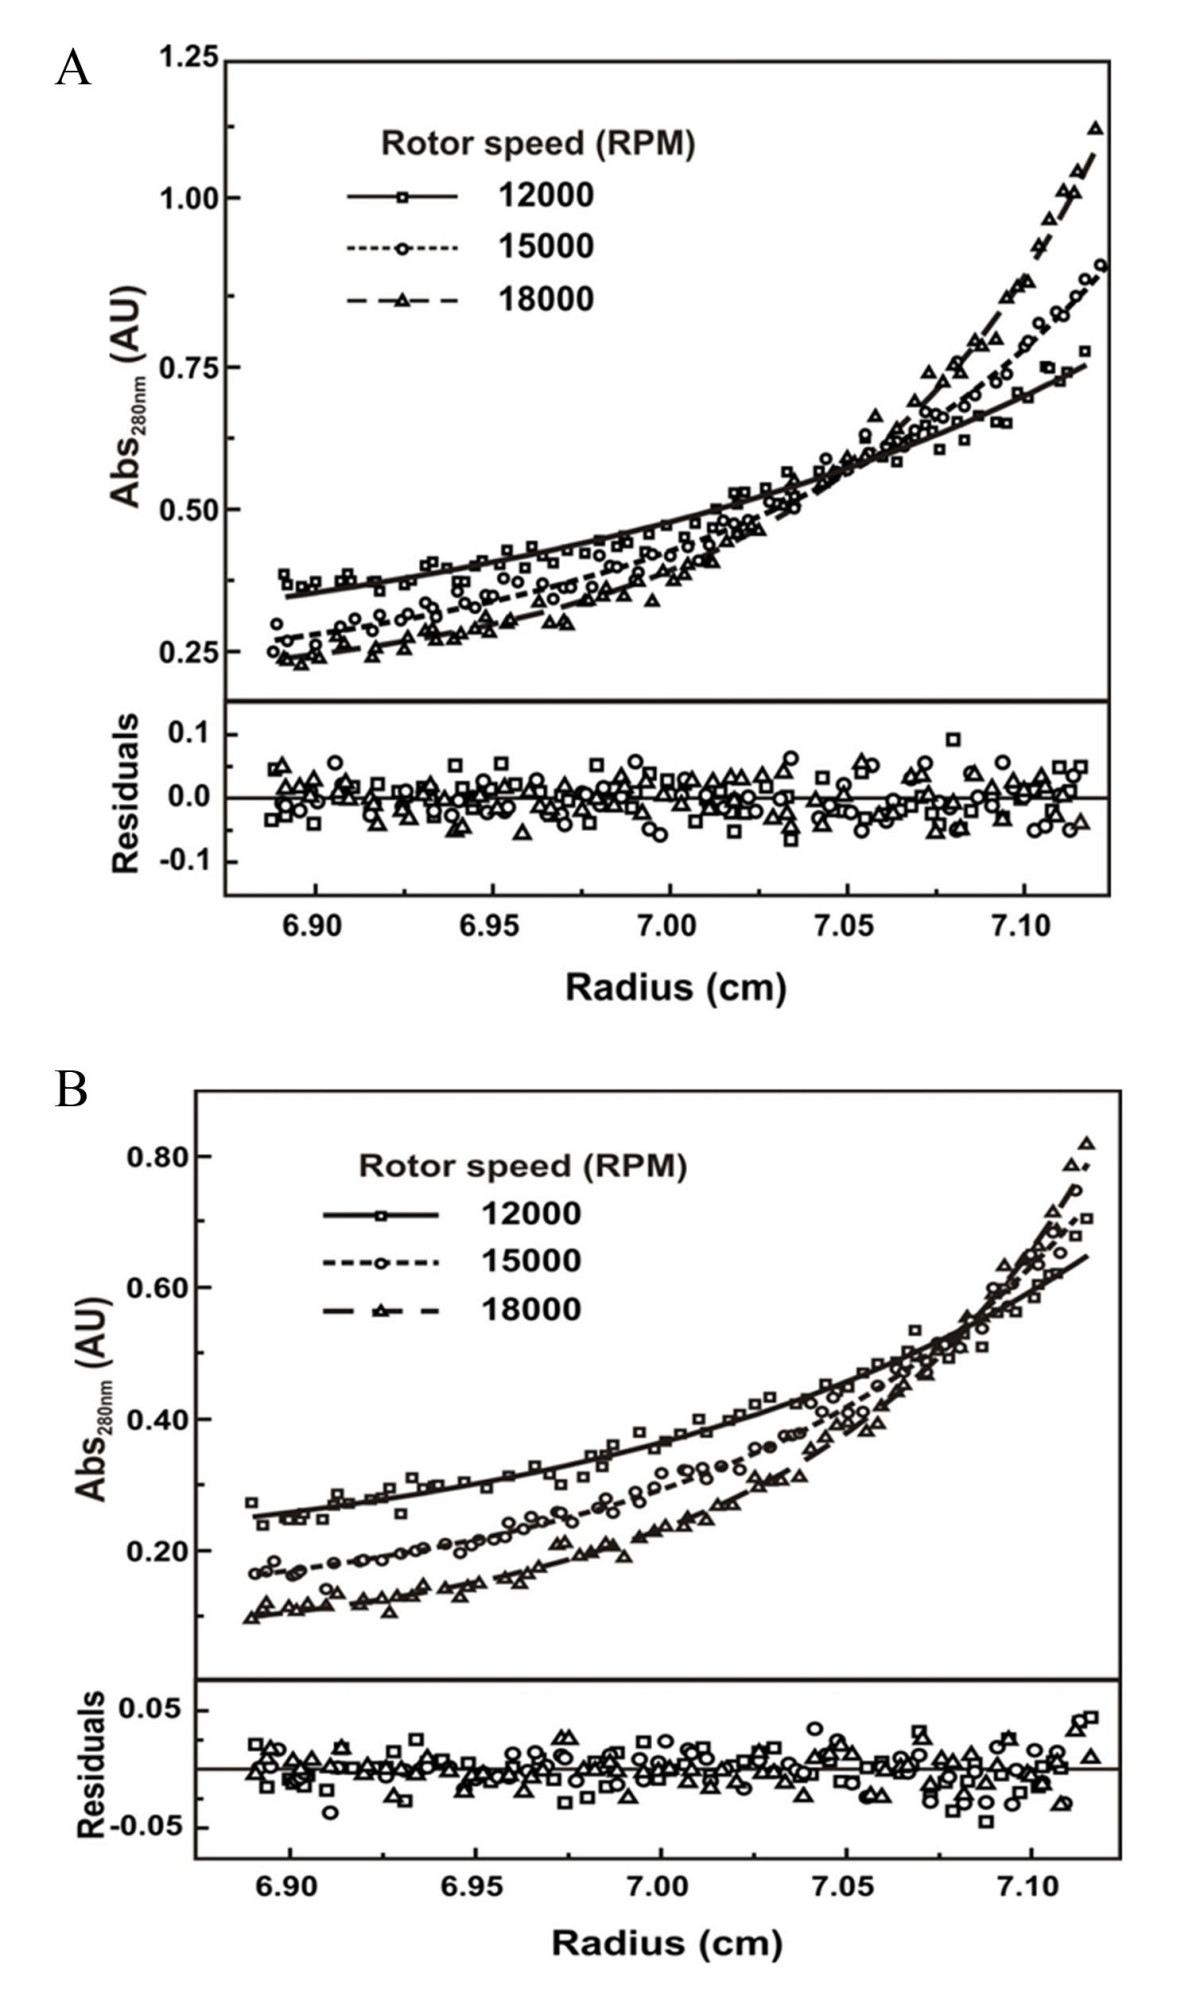 http://static-content.springer.com/image/art%3A10.1186%2F1472-6807-10-15/MediaObjects/12900_2010_Article_311_Fig4_HTML.jpg